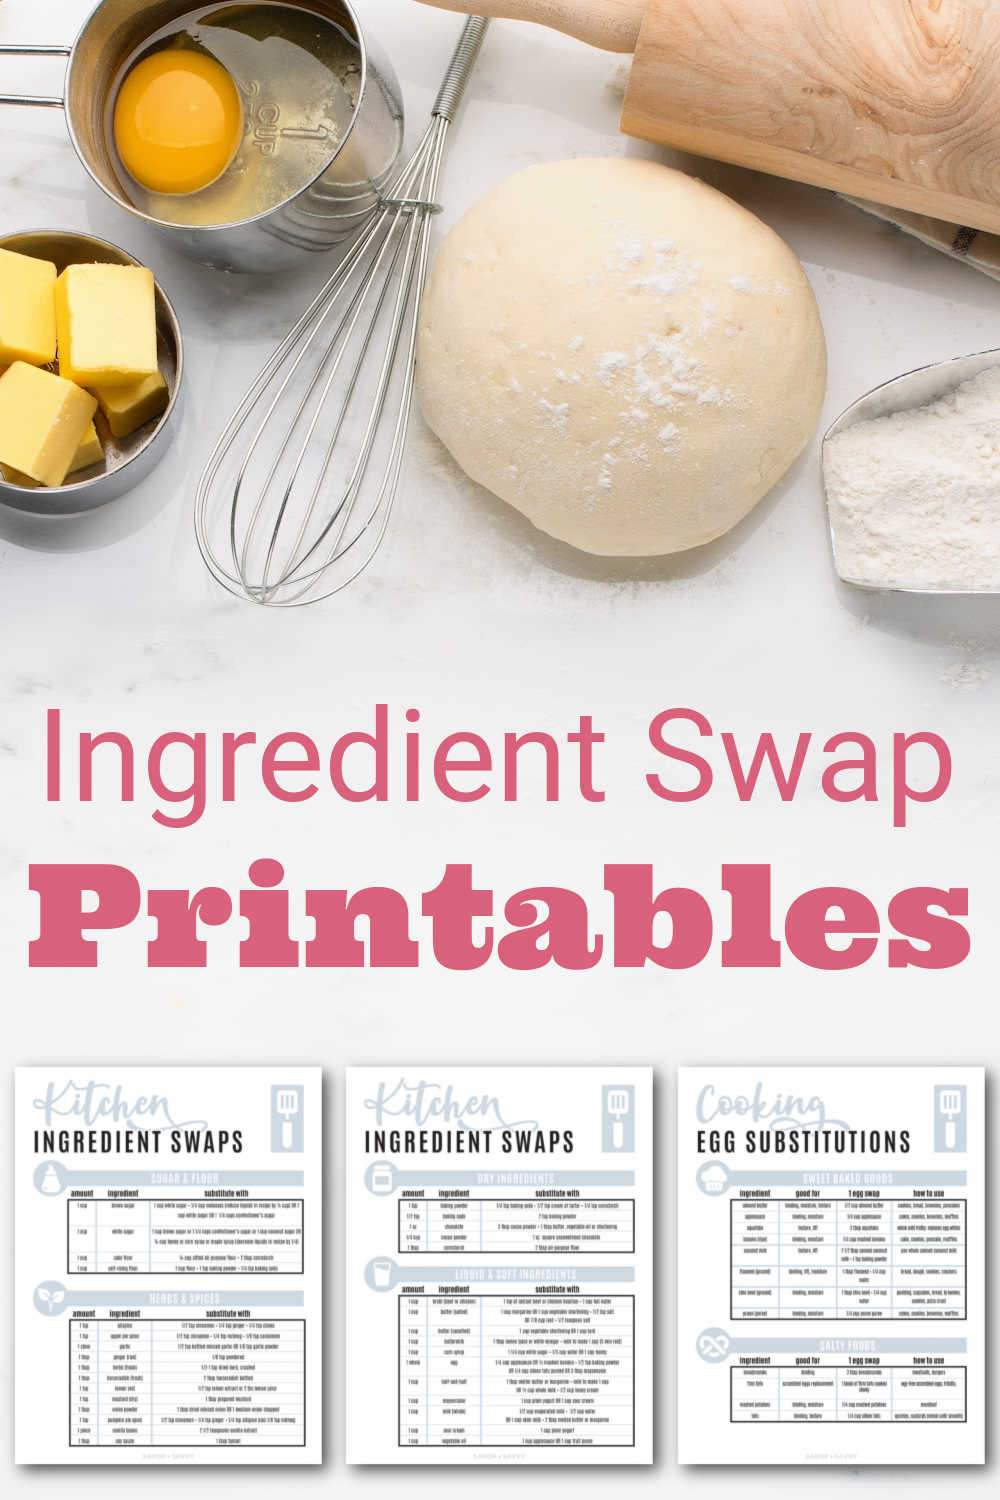 Cooking + Baking Ingredient Substitutions Chart {Free Printables}